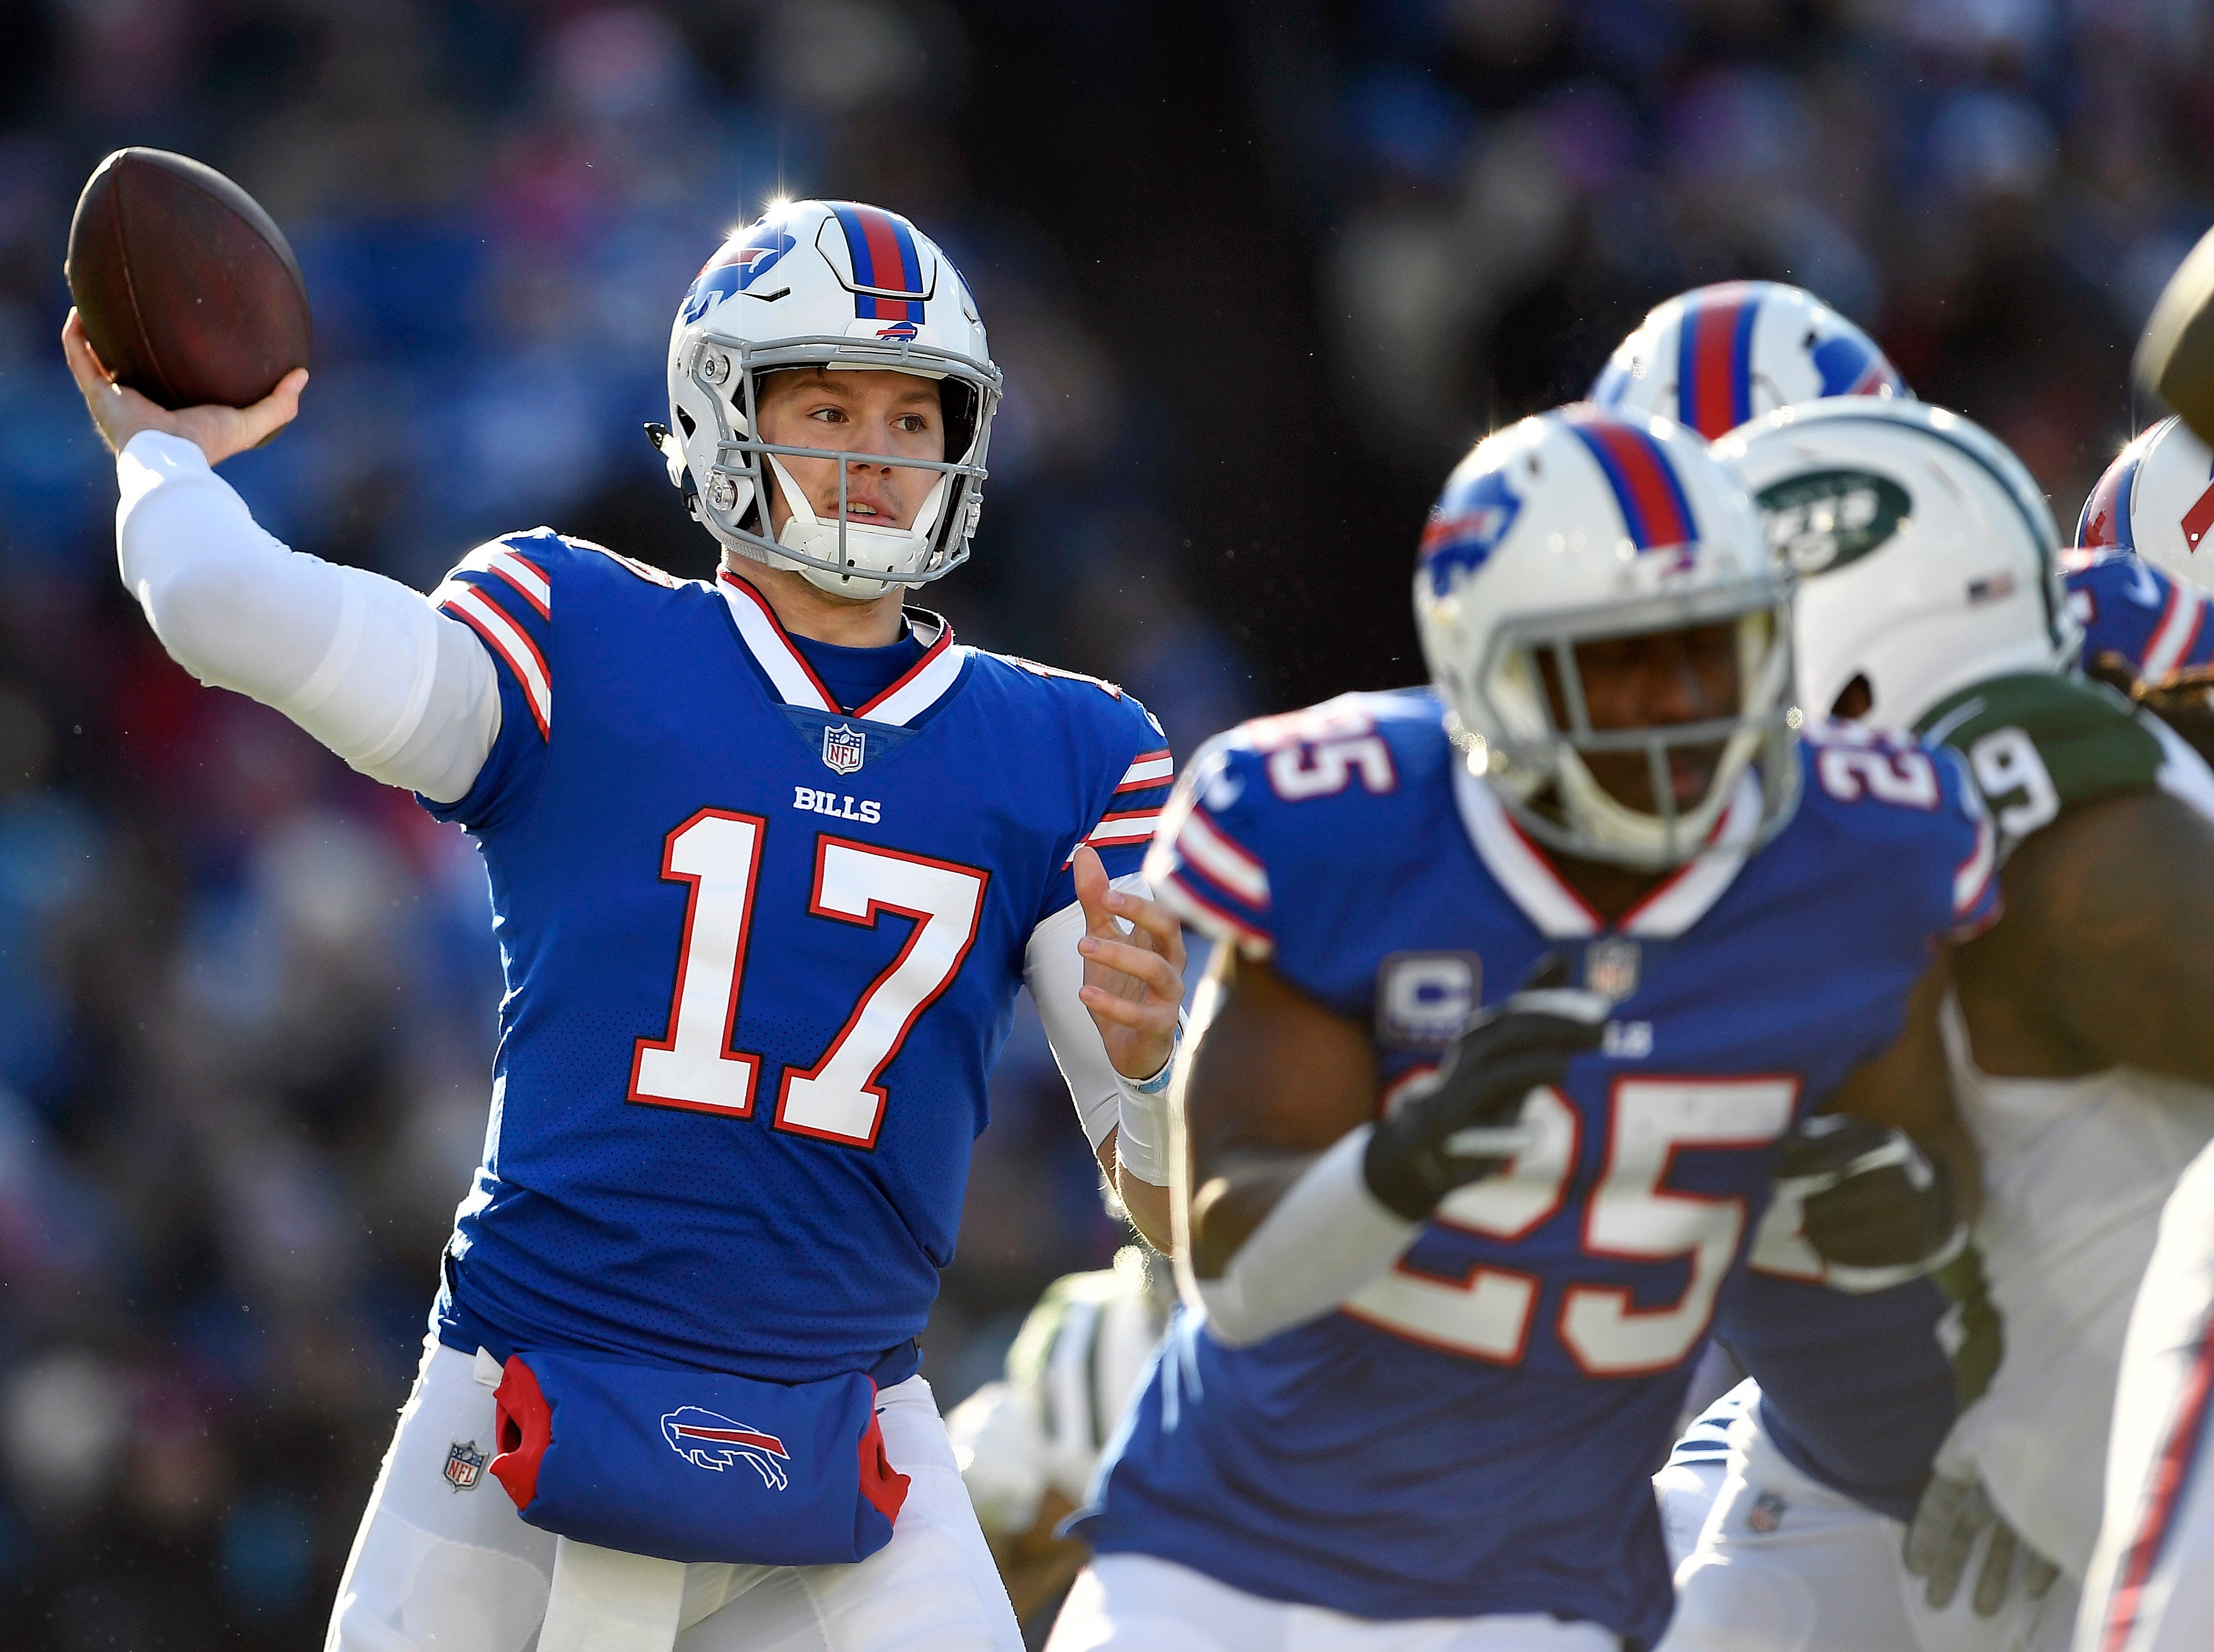 Buffalo Bills quarterback Josh Allen passes against the New York Jets during the first half of an NFL football game, Sunday, Dec. 9, 2018, in Orchard Park, N.Y. (AP Photo/Adrian Kraus)